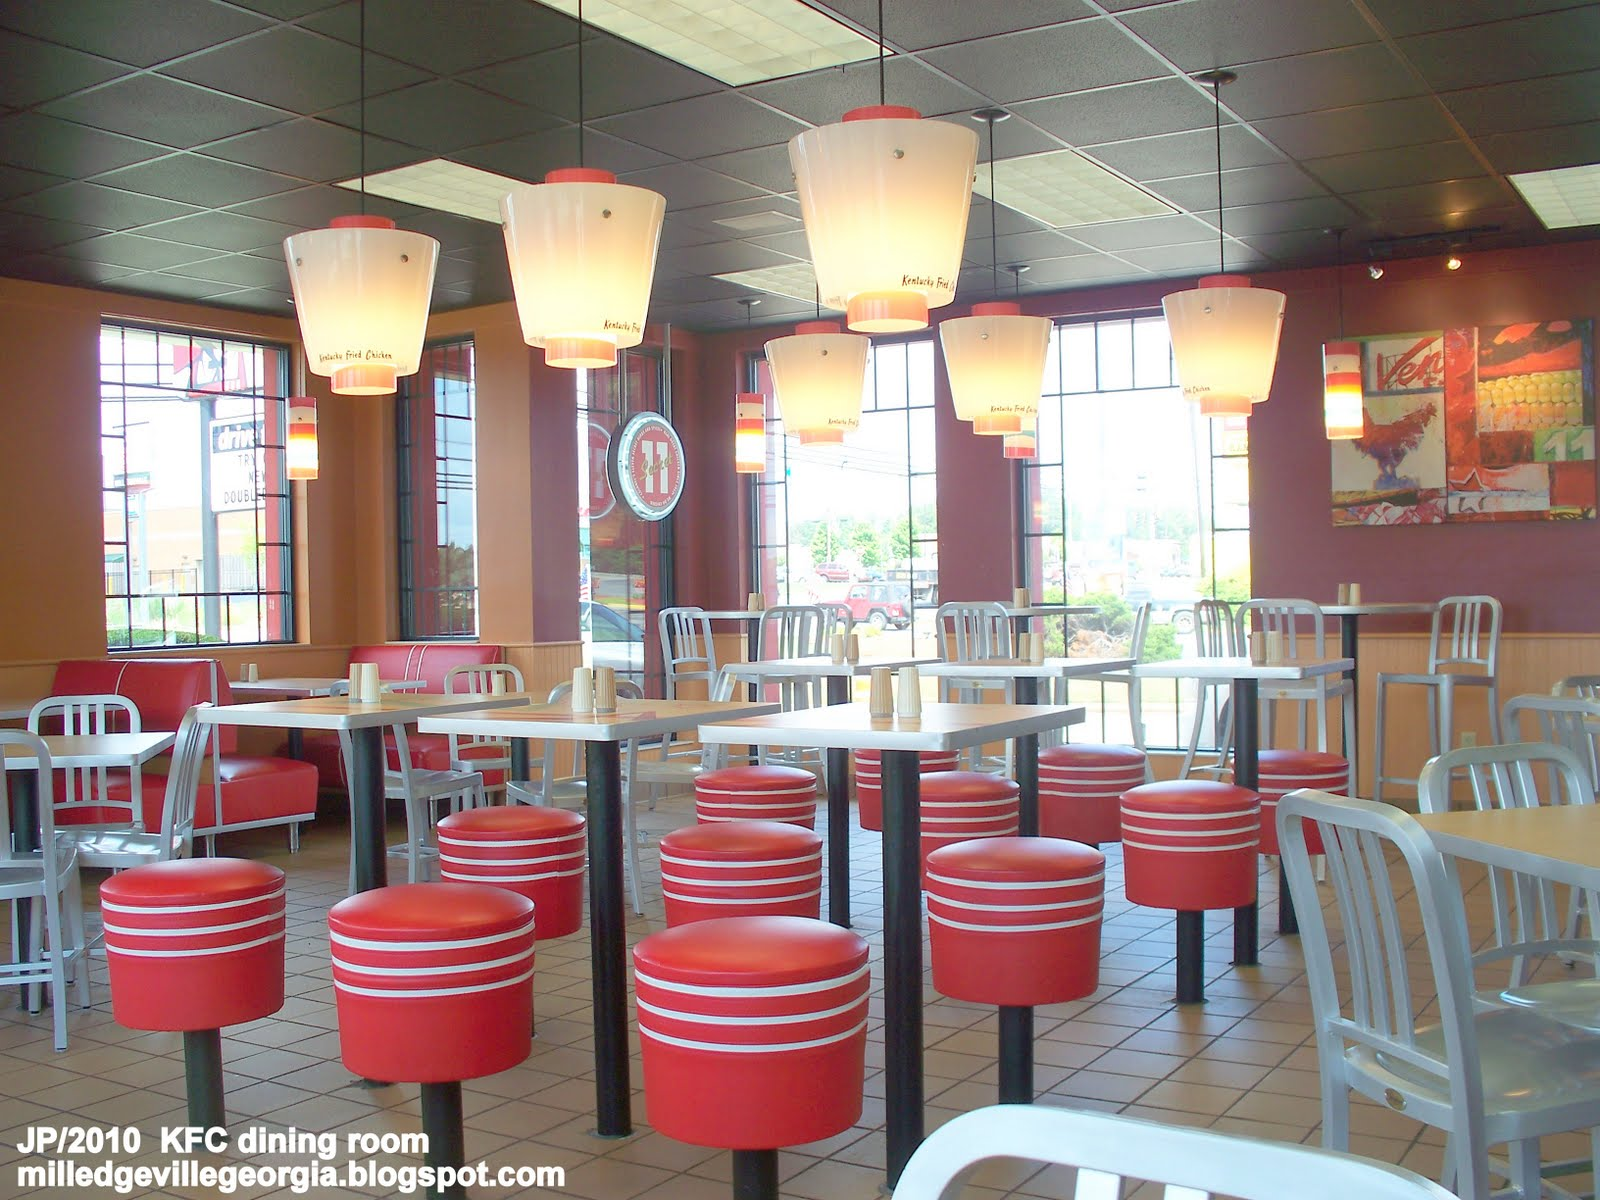 kfc the best fast food restaurant The official internet headquarters of kentucky fried chicken and its founder, colonel sanders.